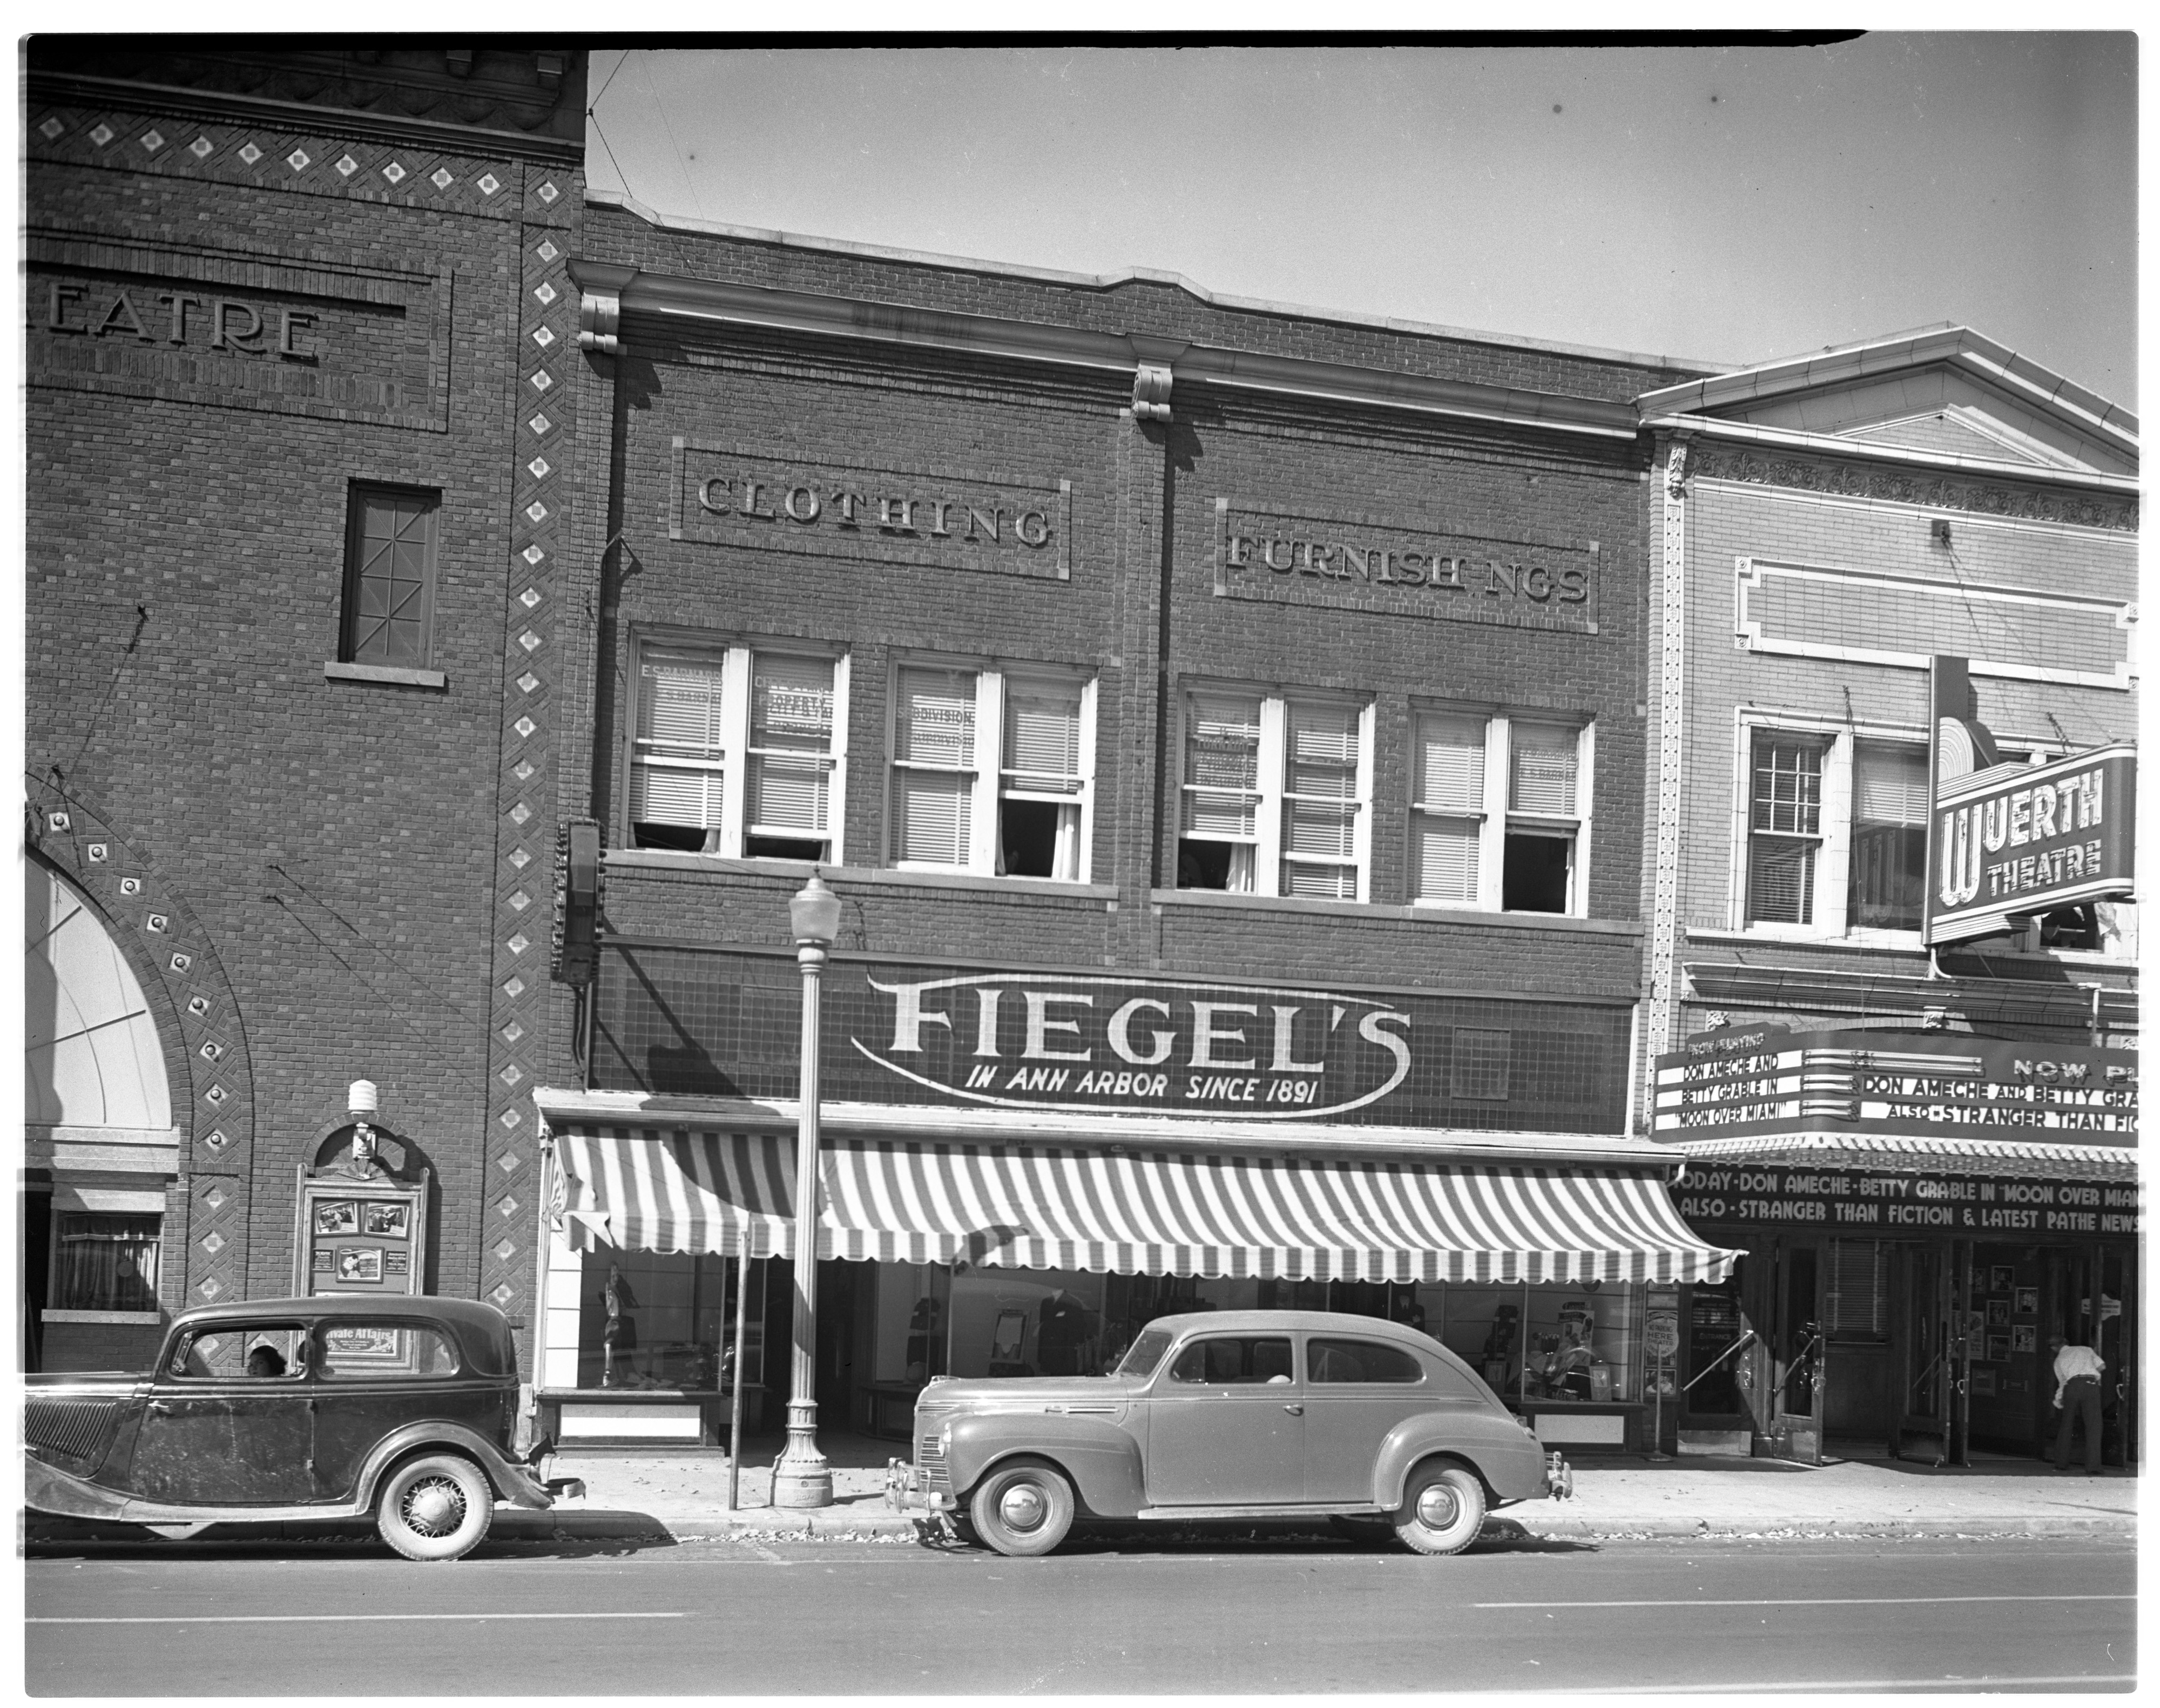 Fiegel Department Store during 50th Anniversary, September 1941 image